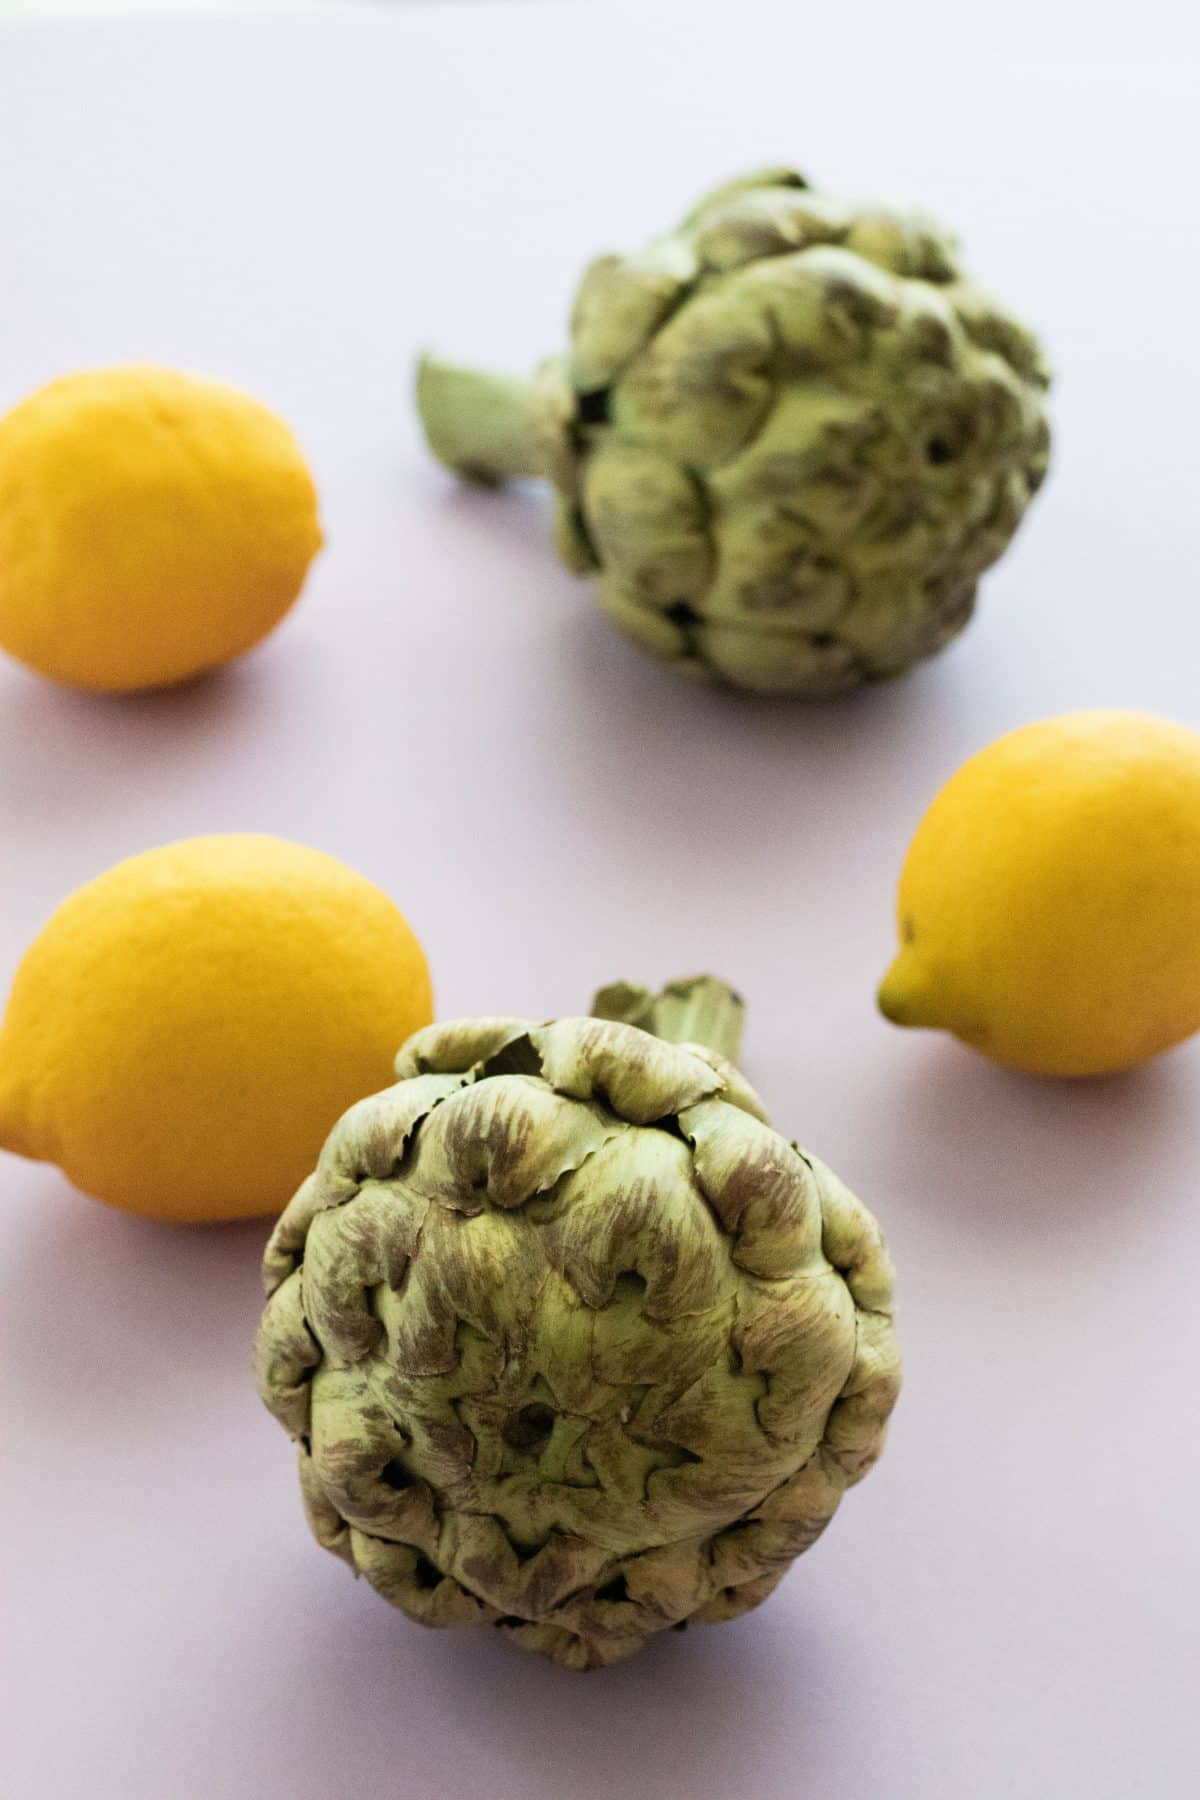 two artichokes and three lemons on a lavender surface